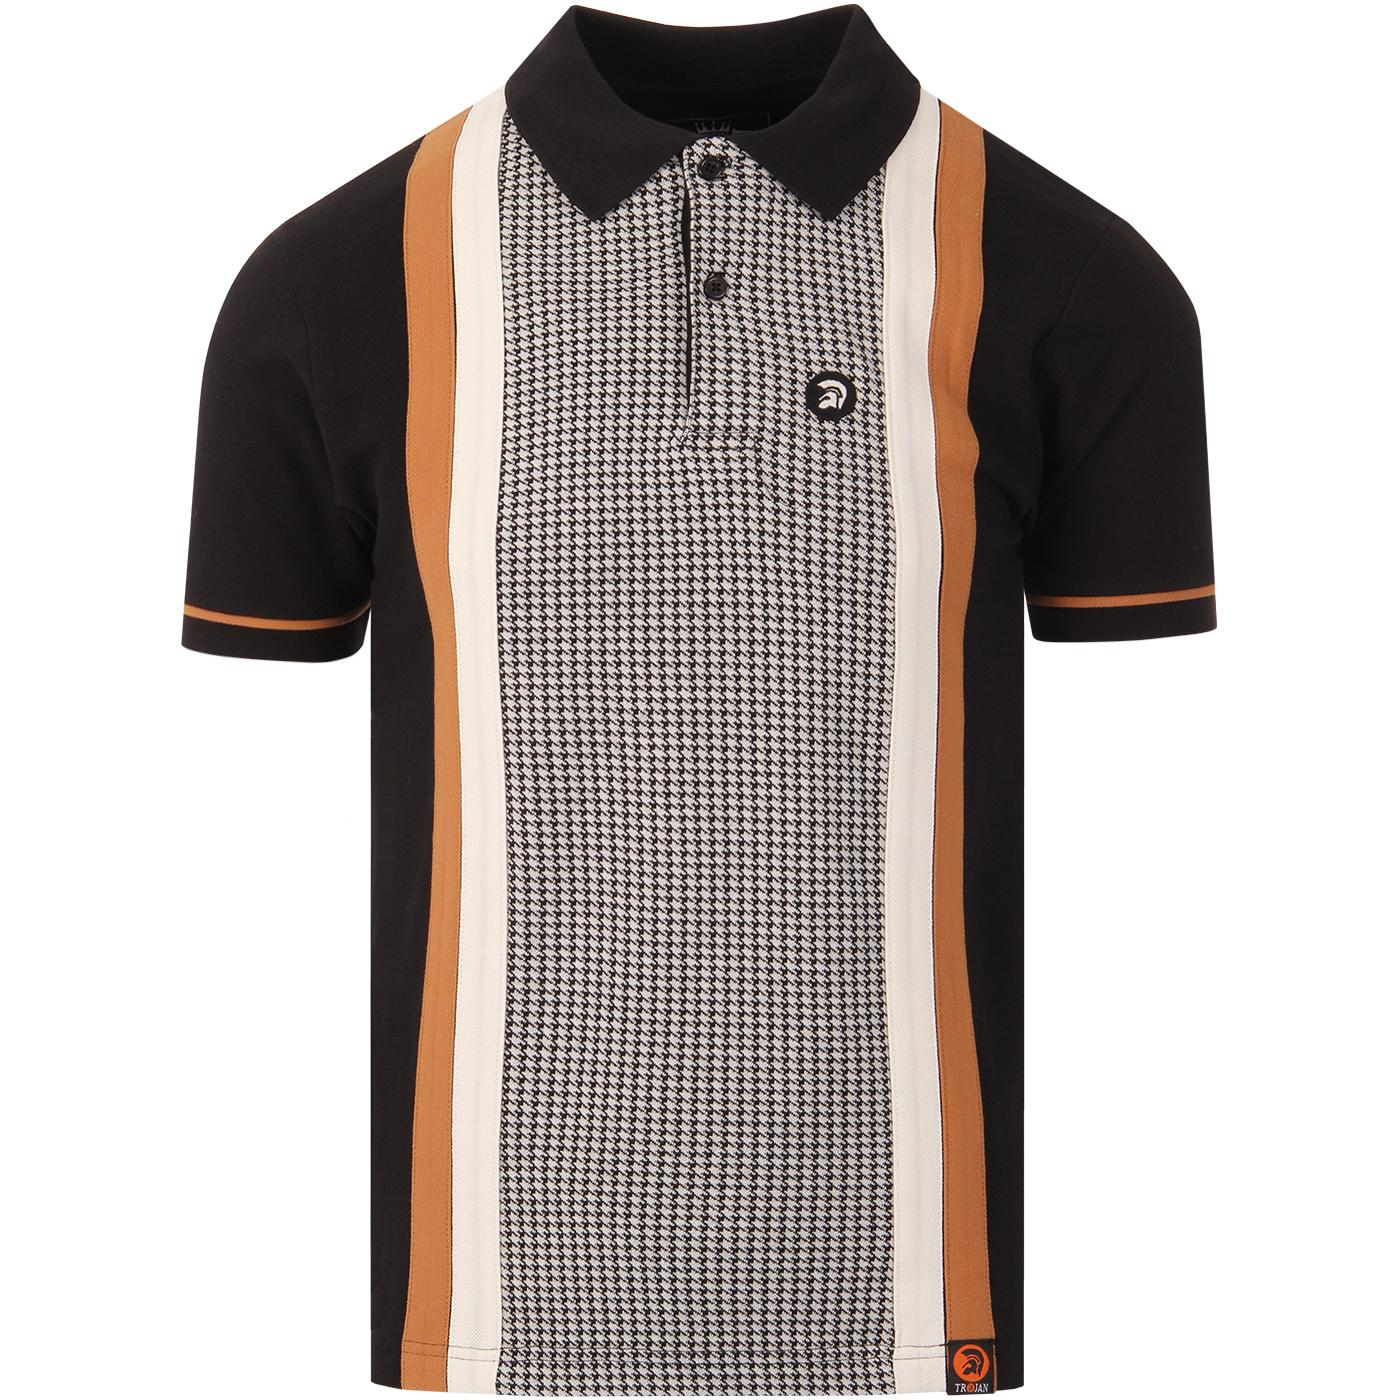 TROJAN RECORDS Mod Cut & Sew Dogtooth Panel Polo B